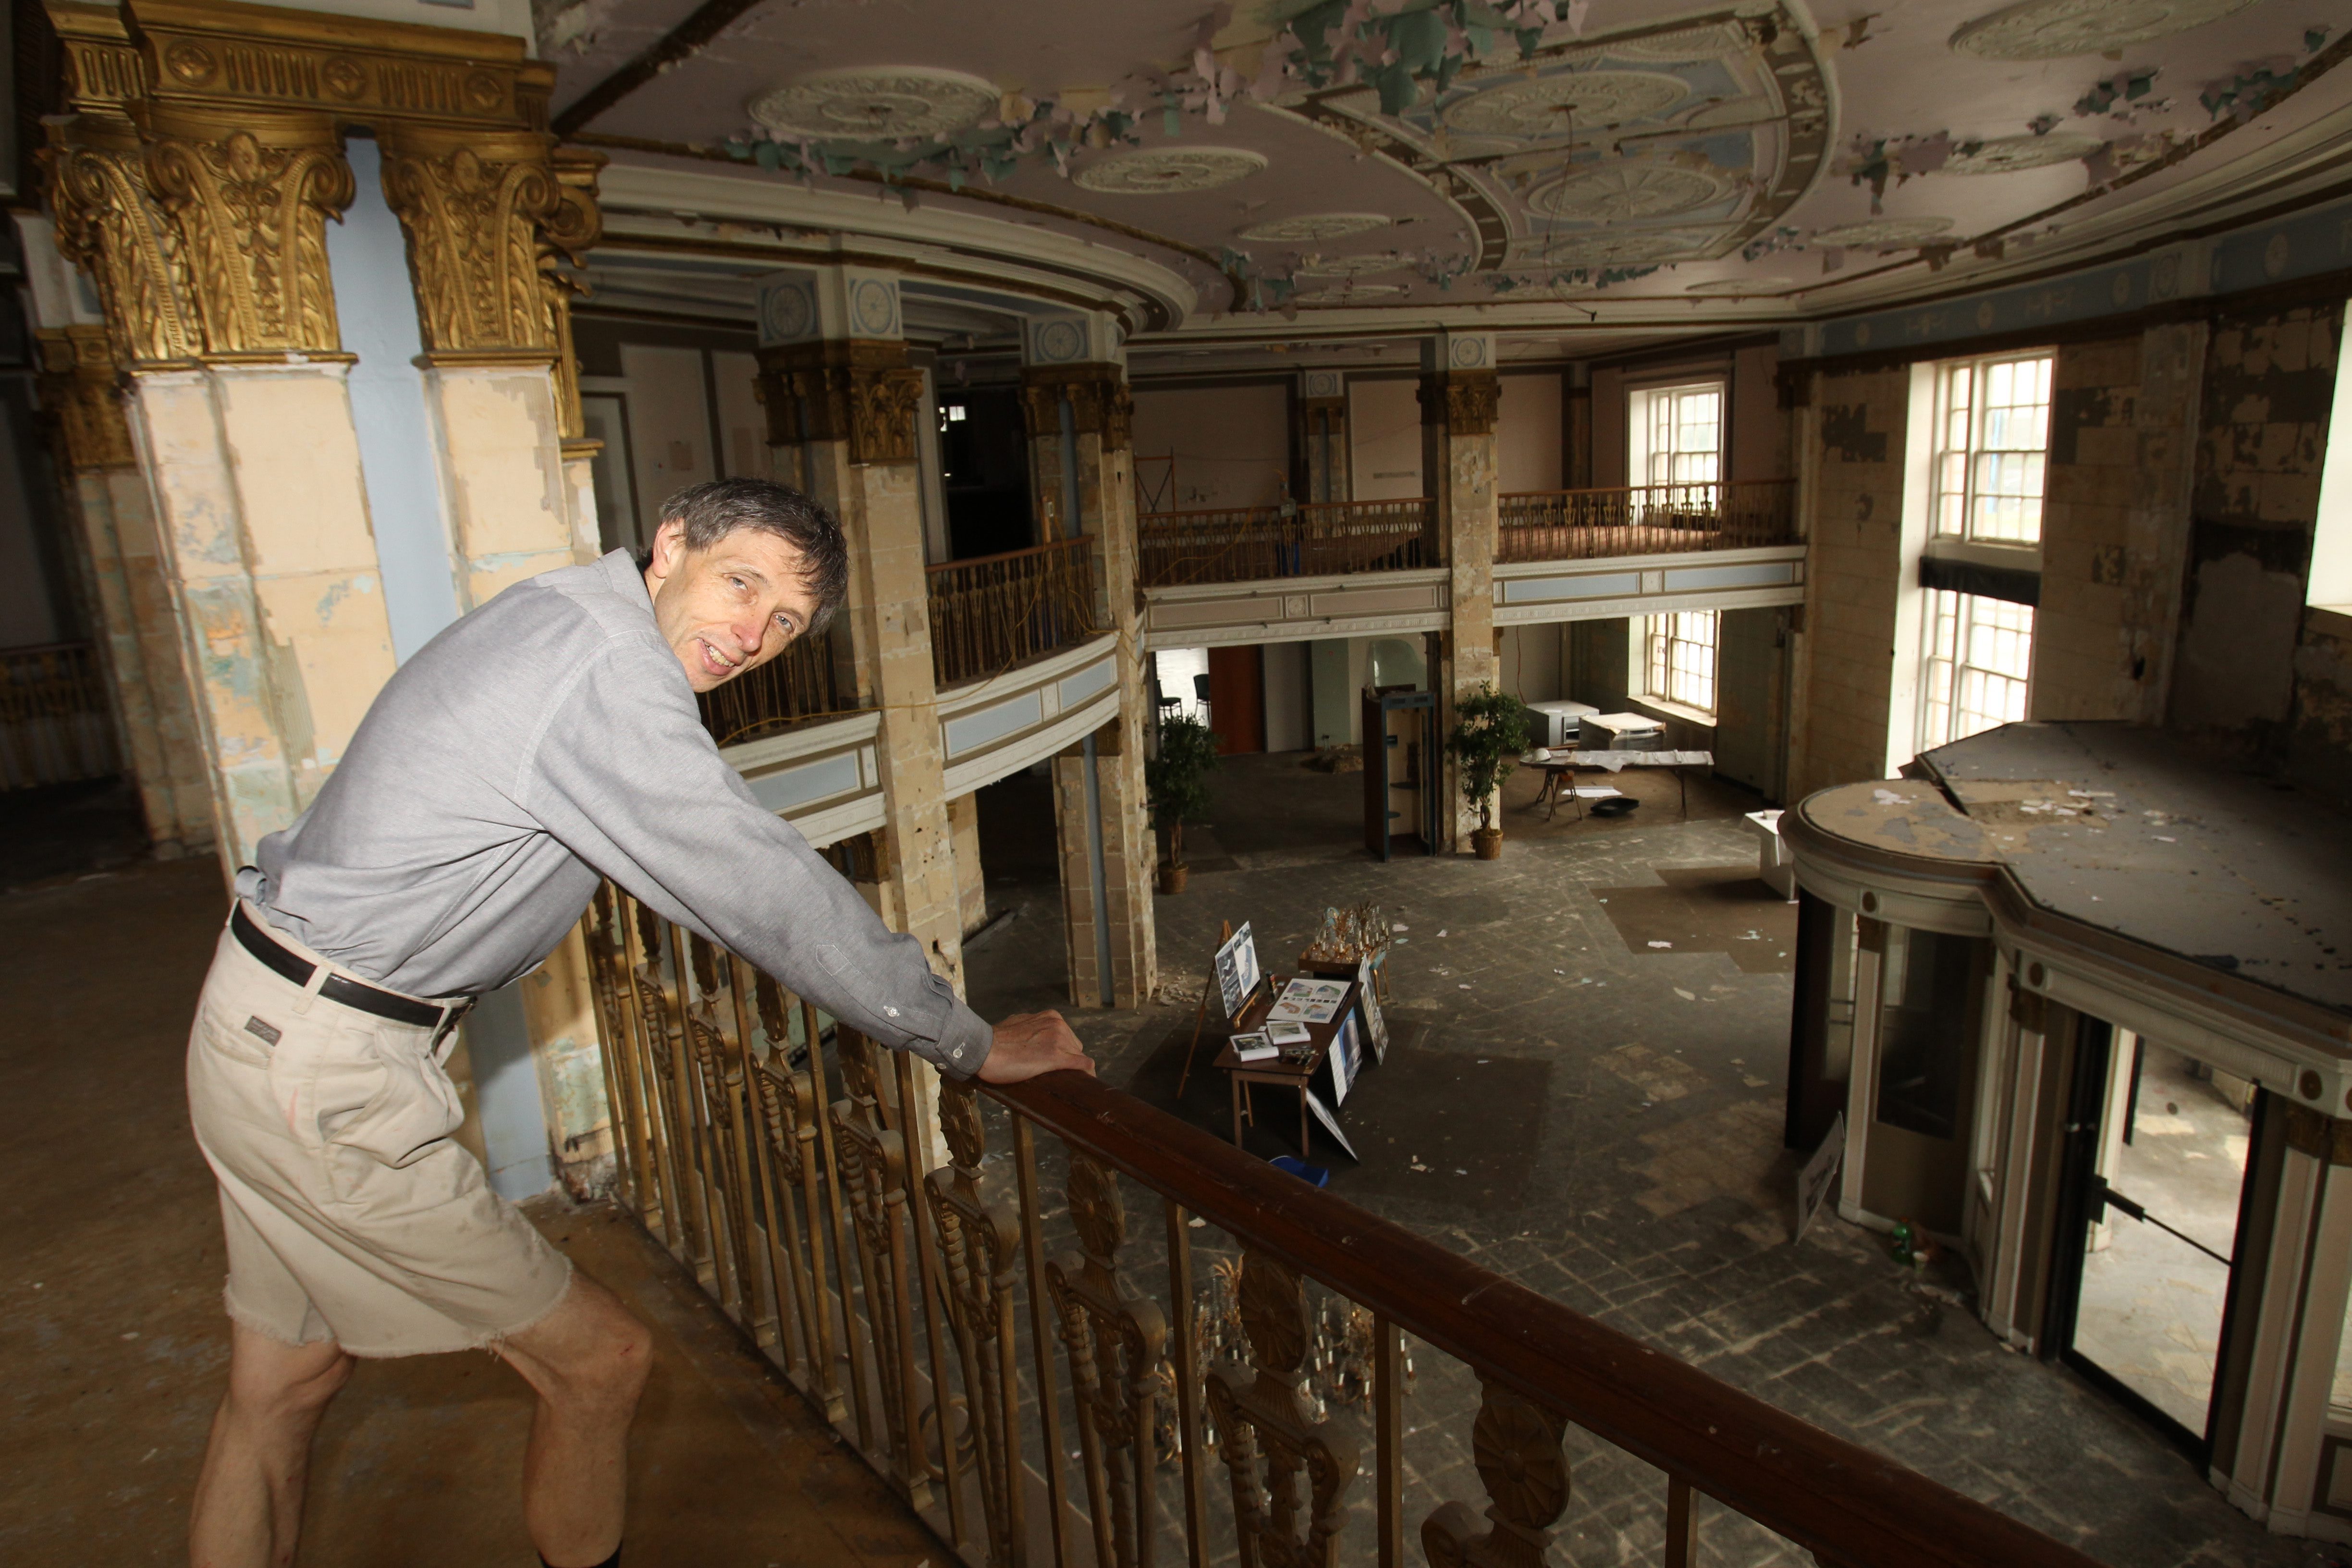 James P. McCoy/Buffalo News    Harry Stinson, described by a Canadian magazine as 'Toronto's answer to Donald Trump,' surveys the lobby of vacant Hotel Niagara amid plans to have a Getzville firm restore it. 'Condo King' considers his project to renovate the downtown landmark 'an enormous opportunity.'